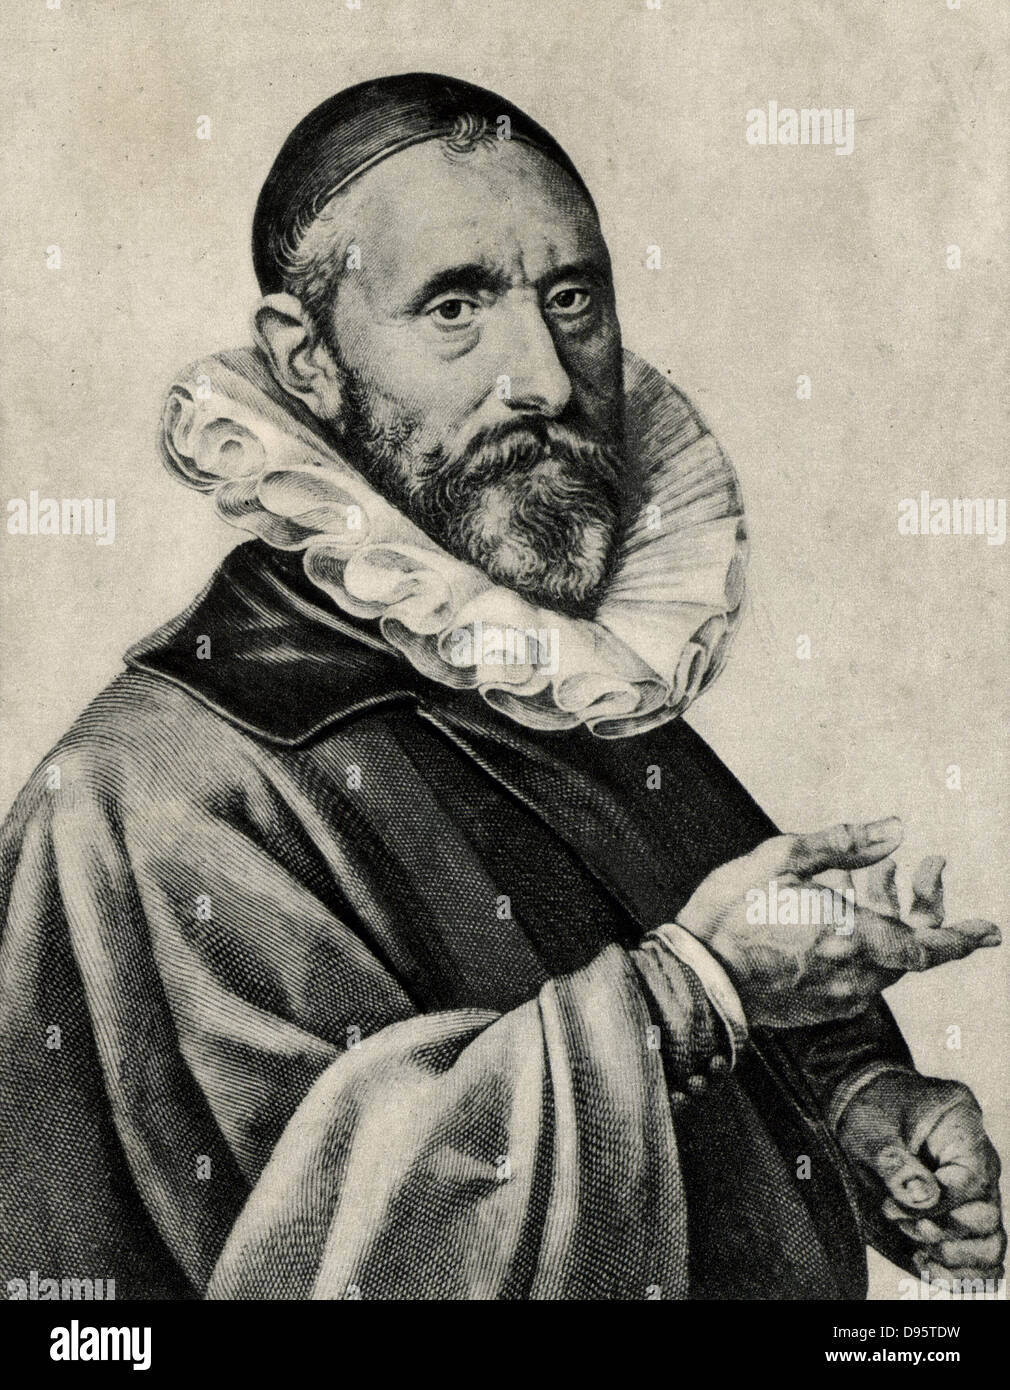 Jan Pieterszoon Sweenlinck (1562-1621) Dutch composer and organist at the Old Church, Amsterdam, from c1580 until - Stock Image